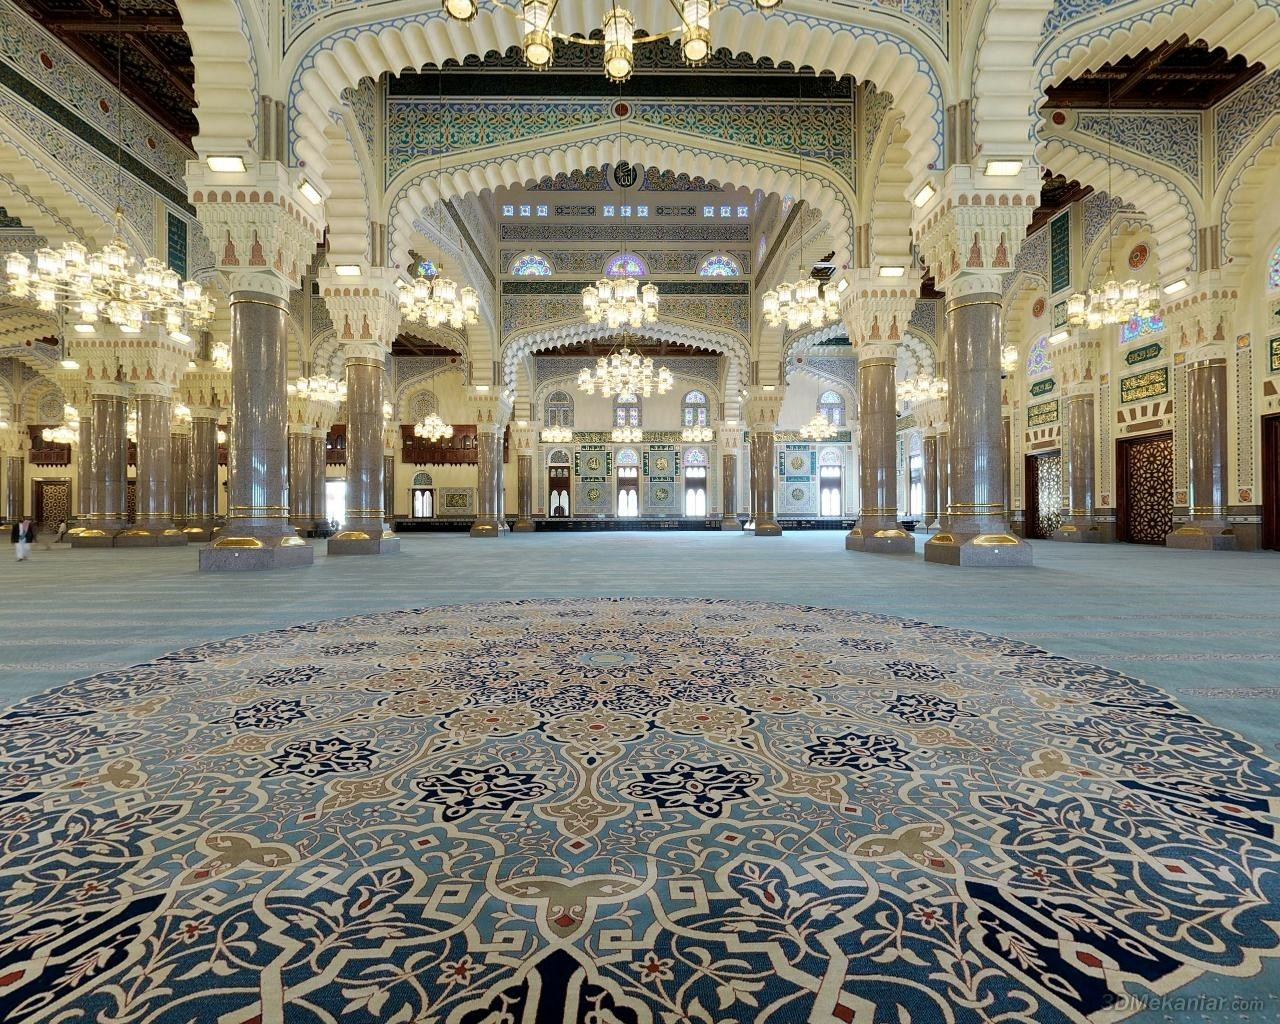 Islam mosques HD Wallpaper